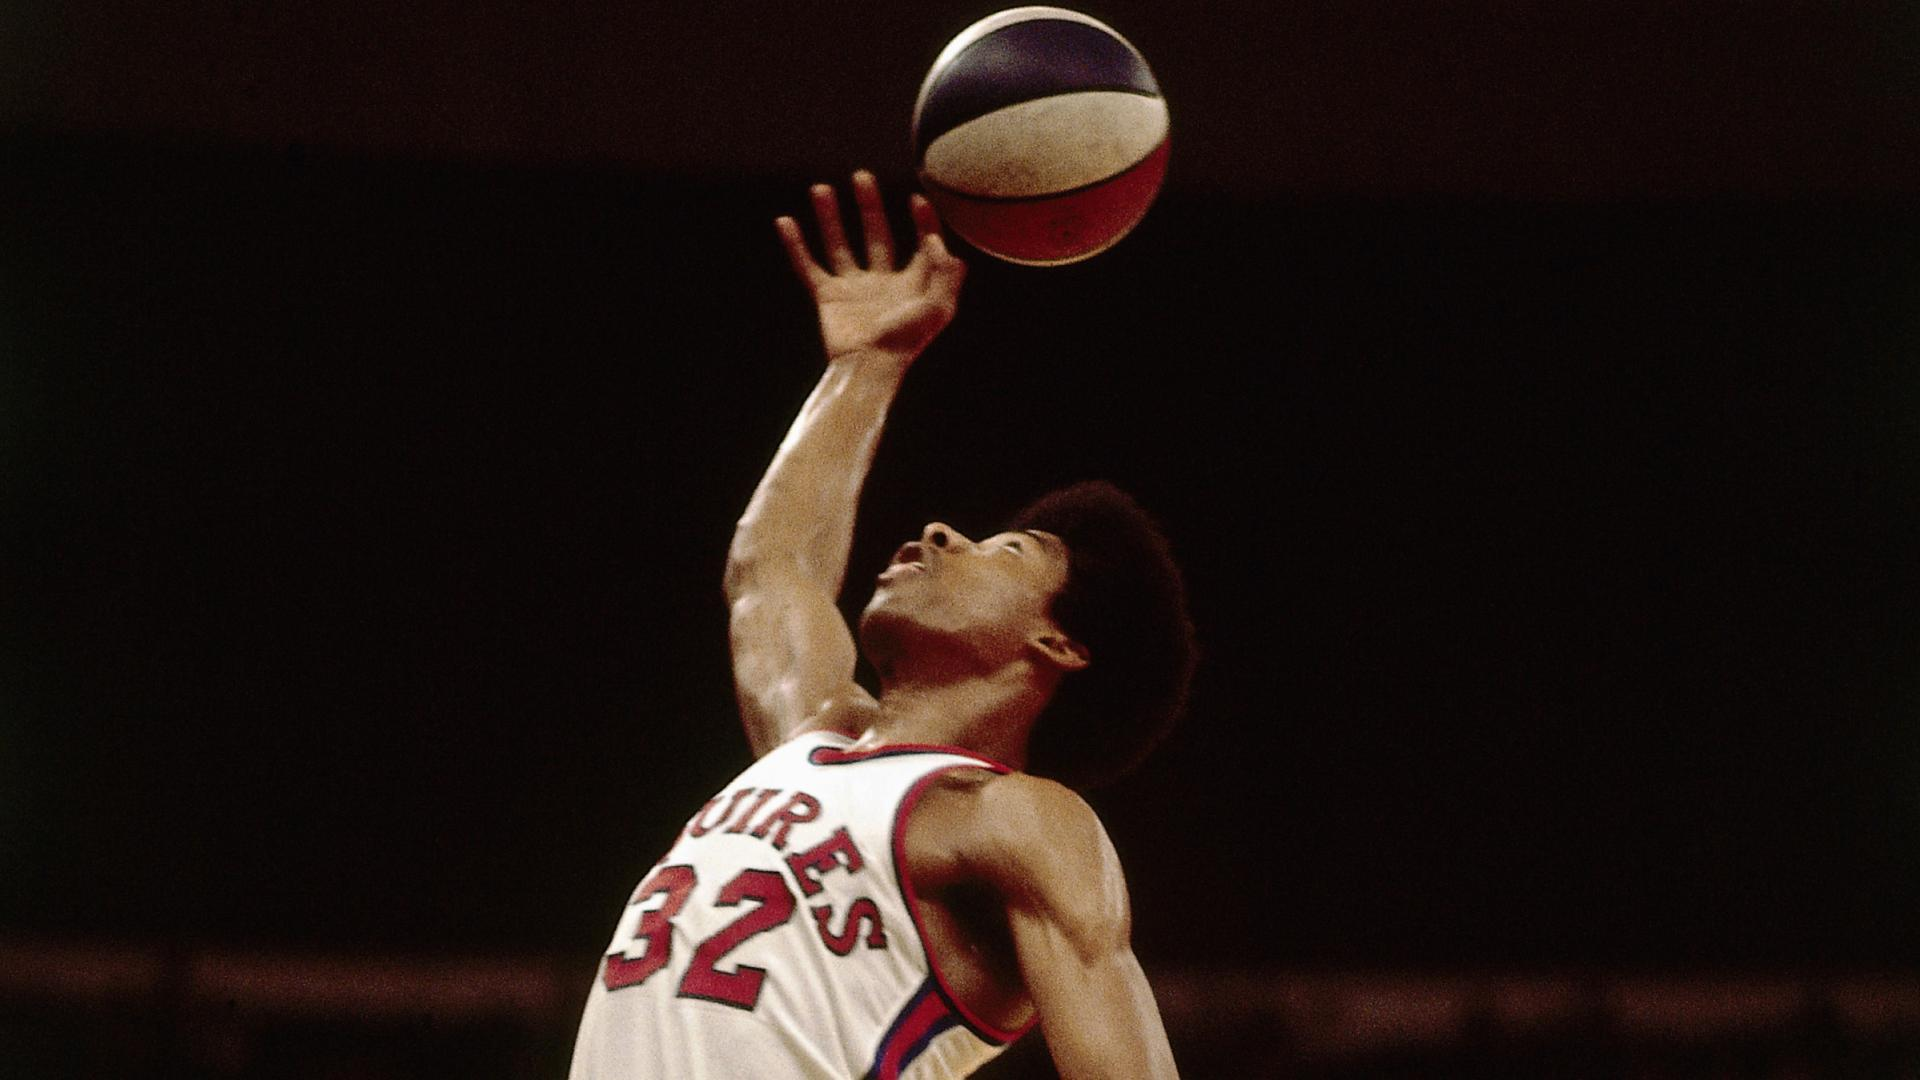 julius winfield erving the rise of a basketball legend essay Tcm greatest classic legends film film subject, athlete, hall of fame inductee, basketball player, person or entity identity julius winfield erving ii.